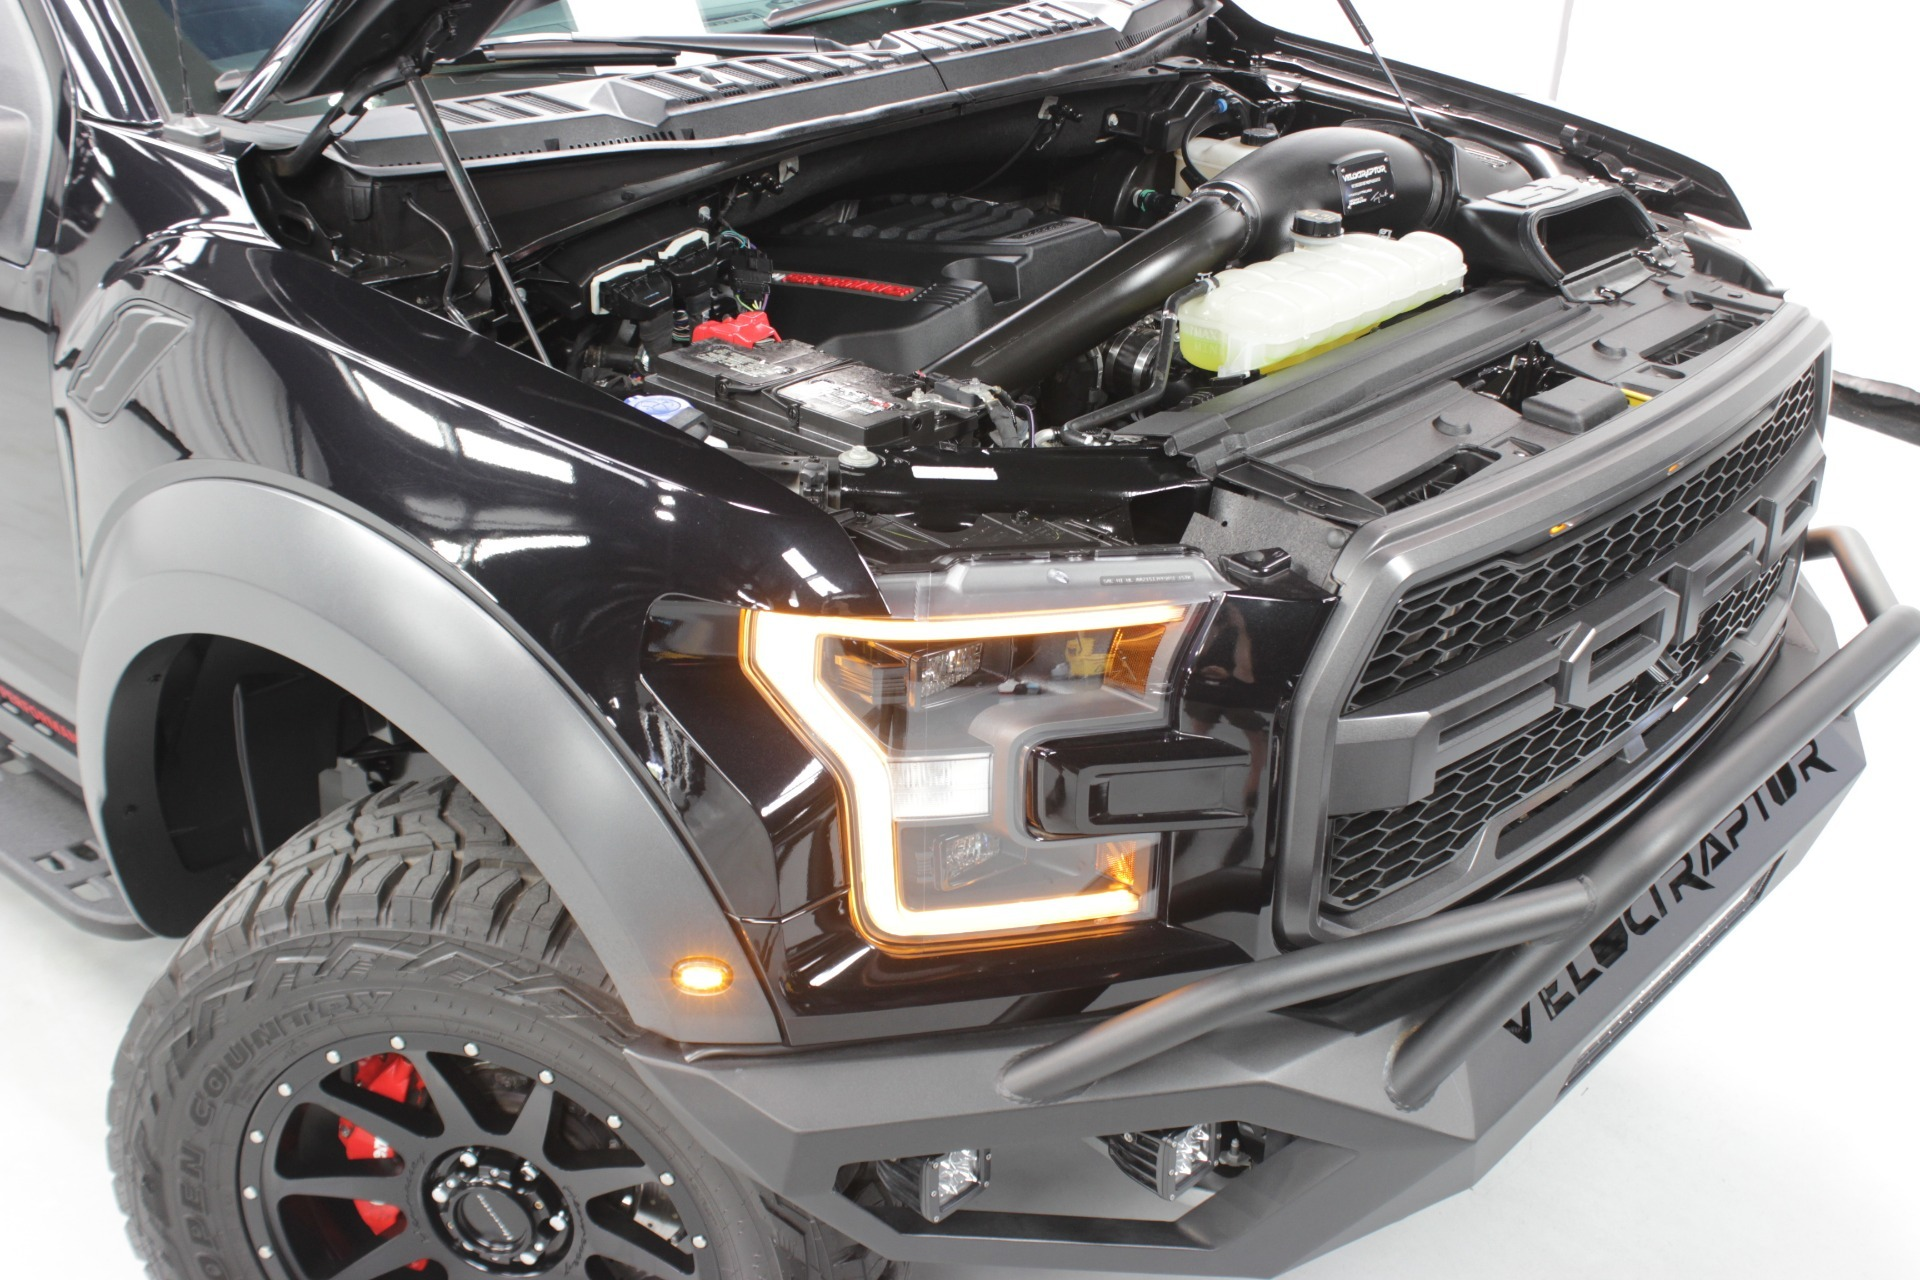 Used 2019 Ford F-150 RAPTOR 4x4 HENNESSY VELOCIRAPTOR VR600 UPGRADE (600HP) for sale $109,995 at Formula Imports in Charlotte NC 28227 41